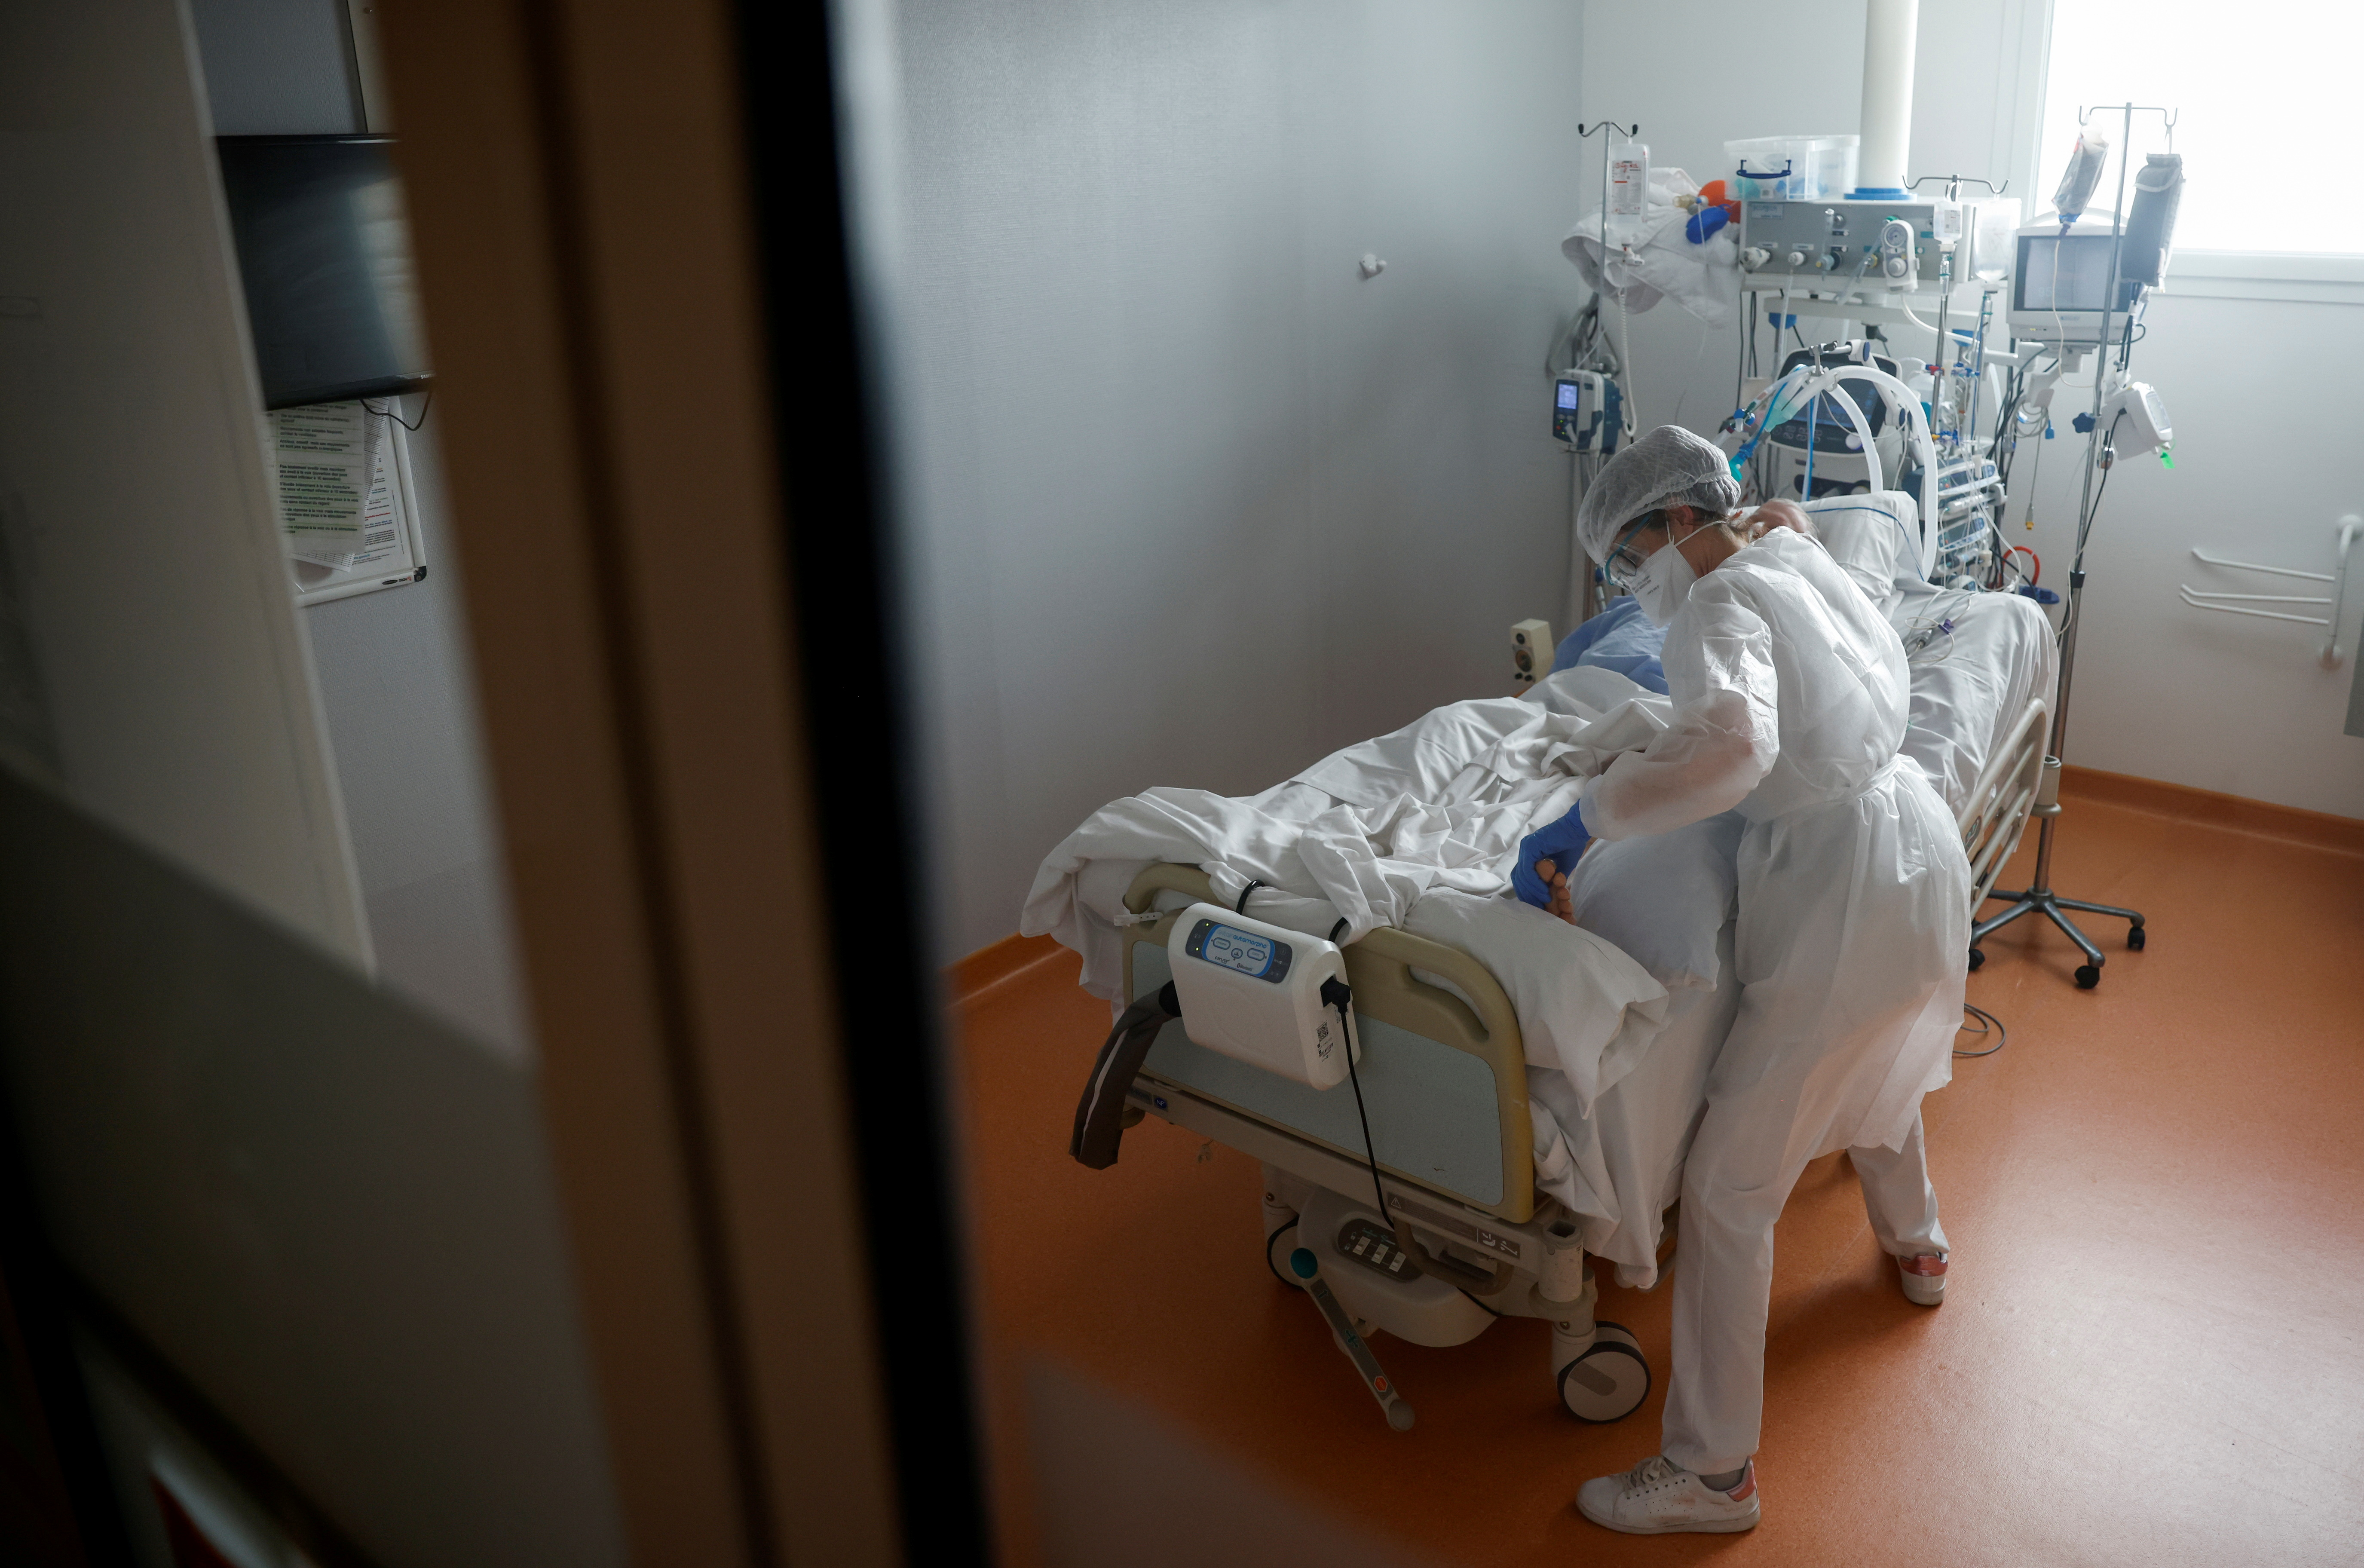 A medical staff member works in the Intensive Care Unit (ICU) where patients suffering from the coronavirus disease (COVID-19) are treated at ELSAN's private hospital Clinique Oceane in Vannes, France, April 7, 2021. REUTERS/Stephane Mahe